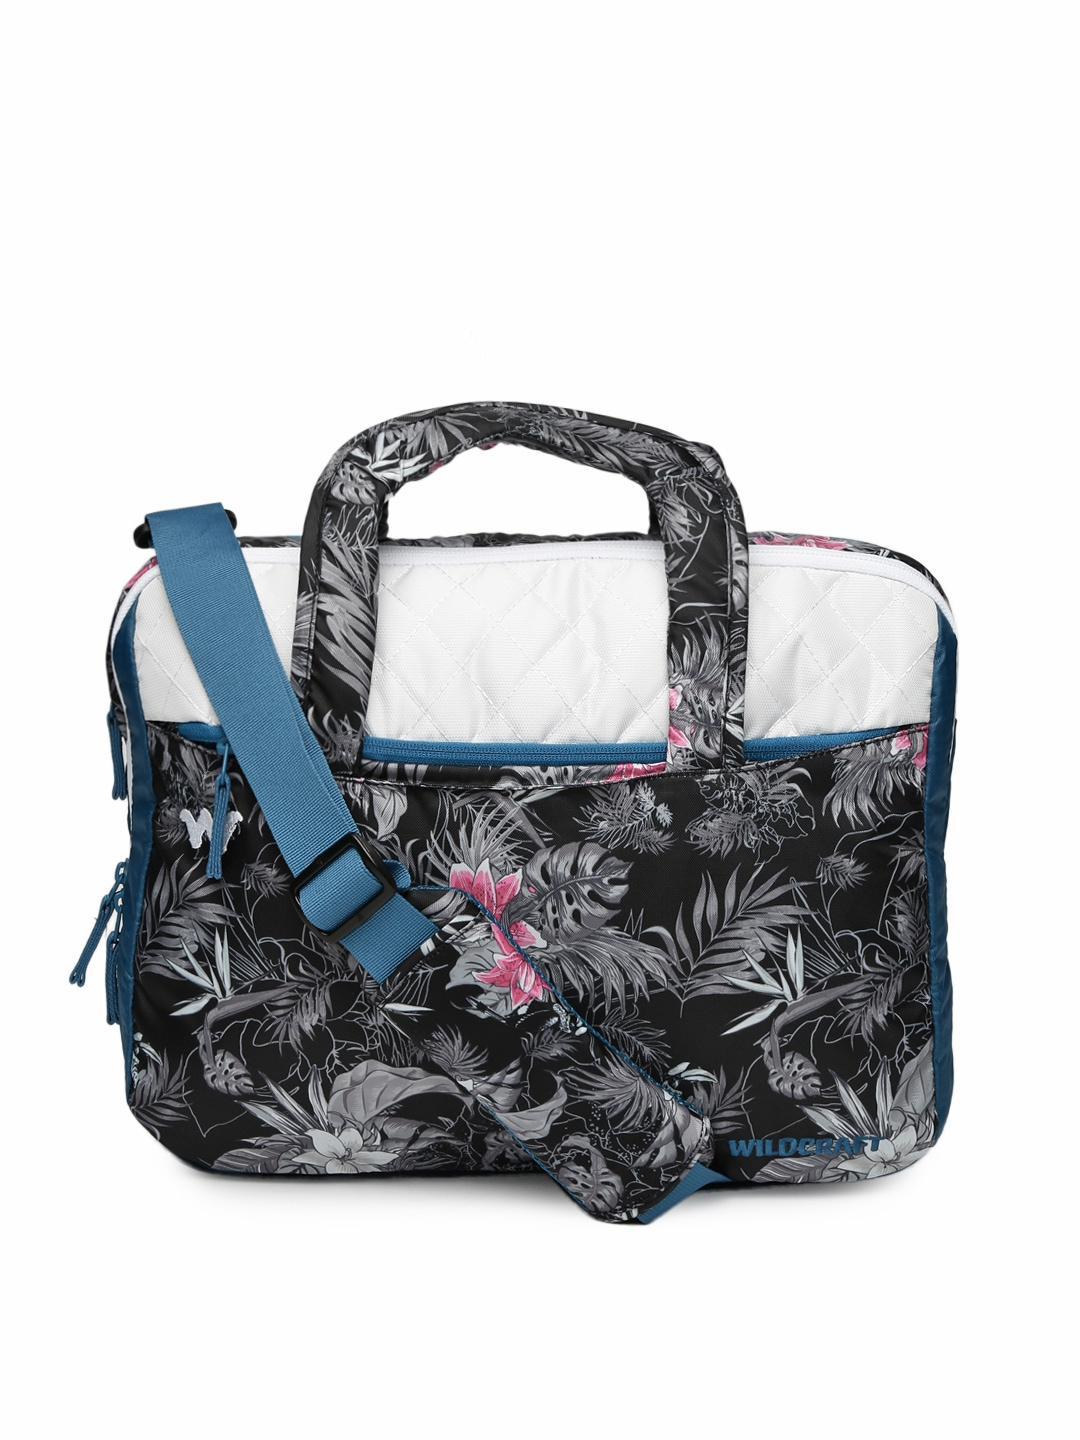 65e06f6f5a Printed Bags Laptop - Buy Printed Bags Laptop online in India